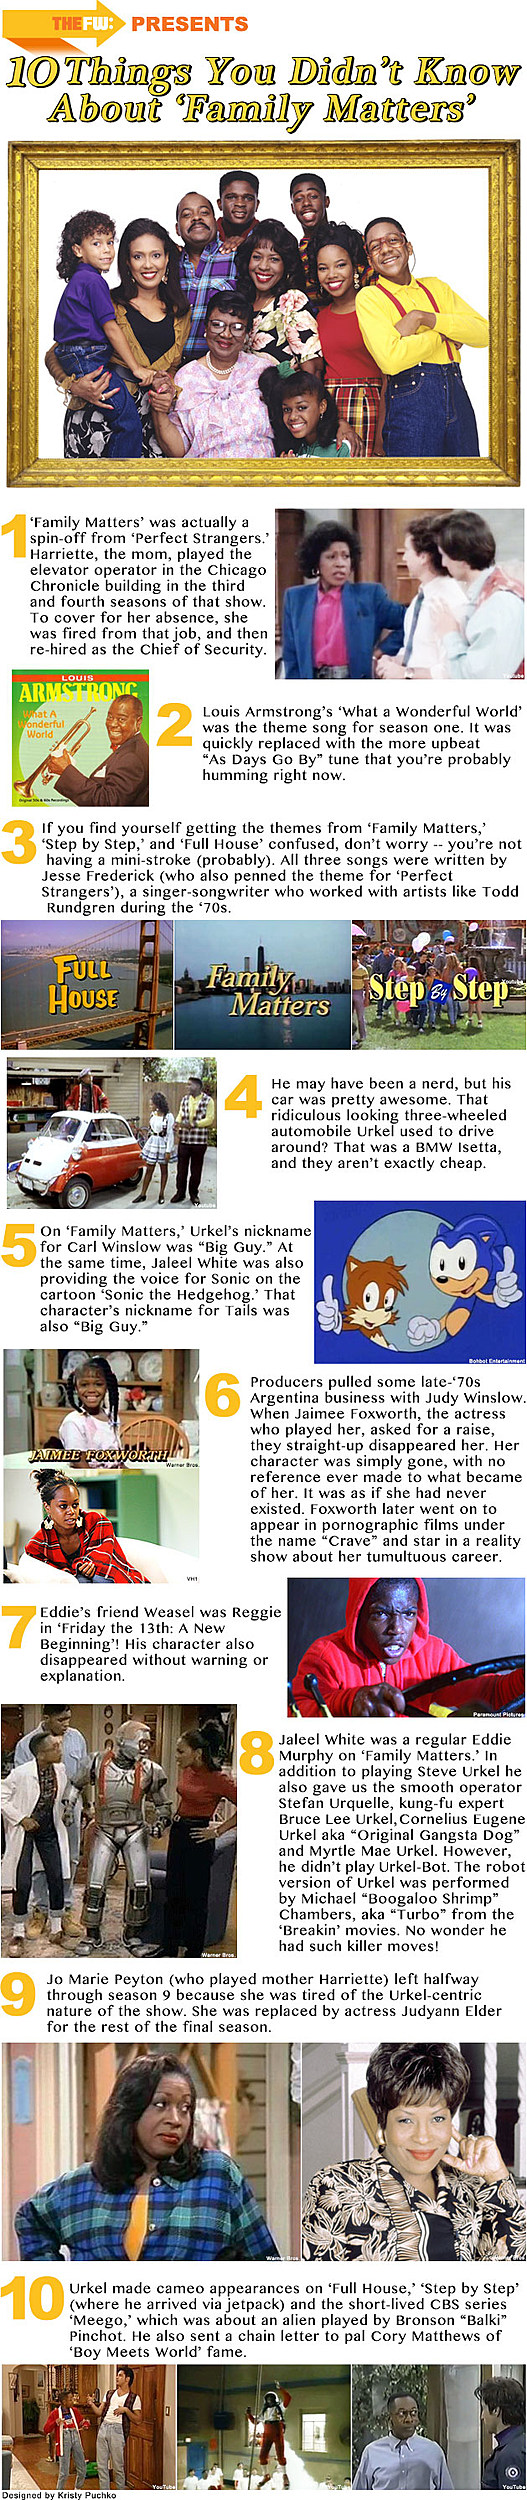 Family Matters Infographic